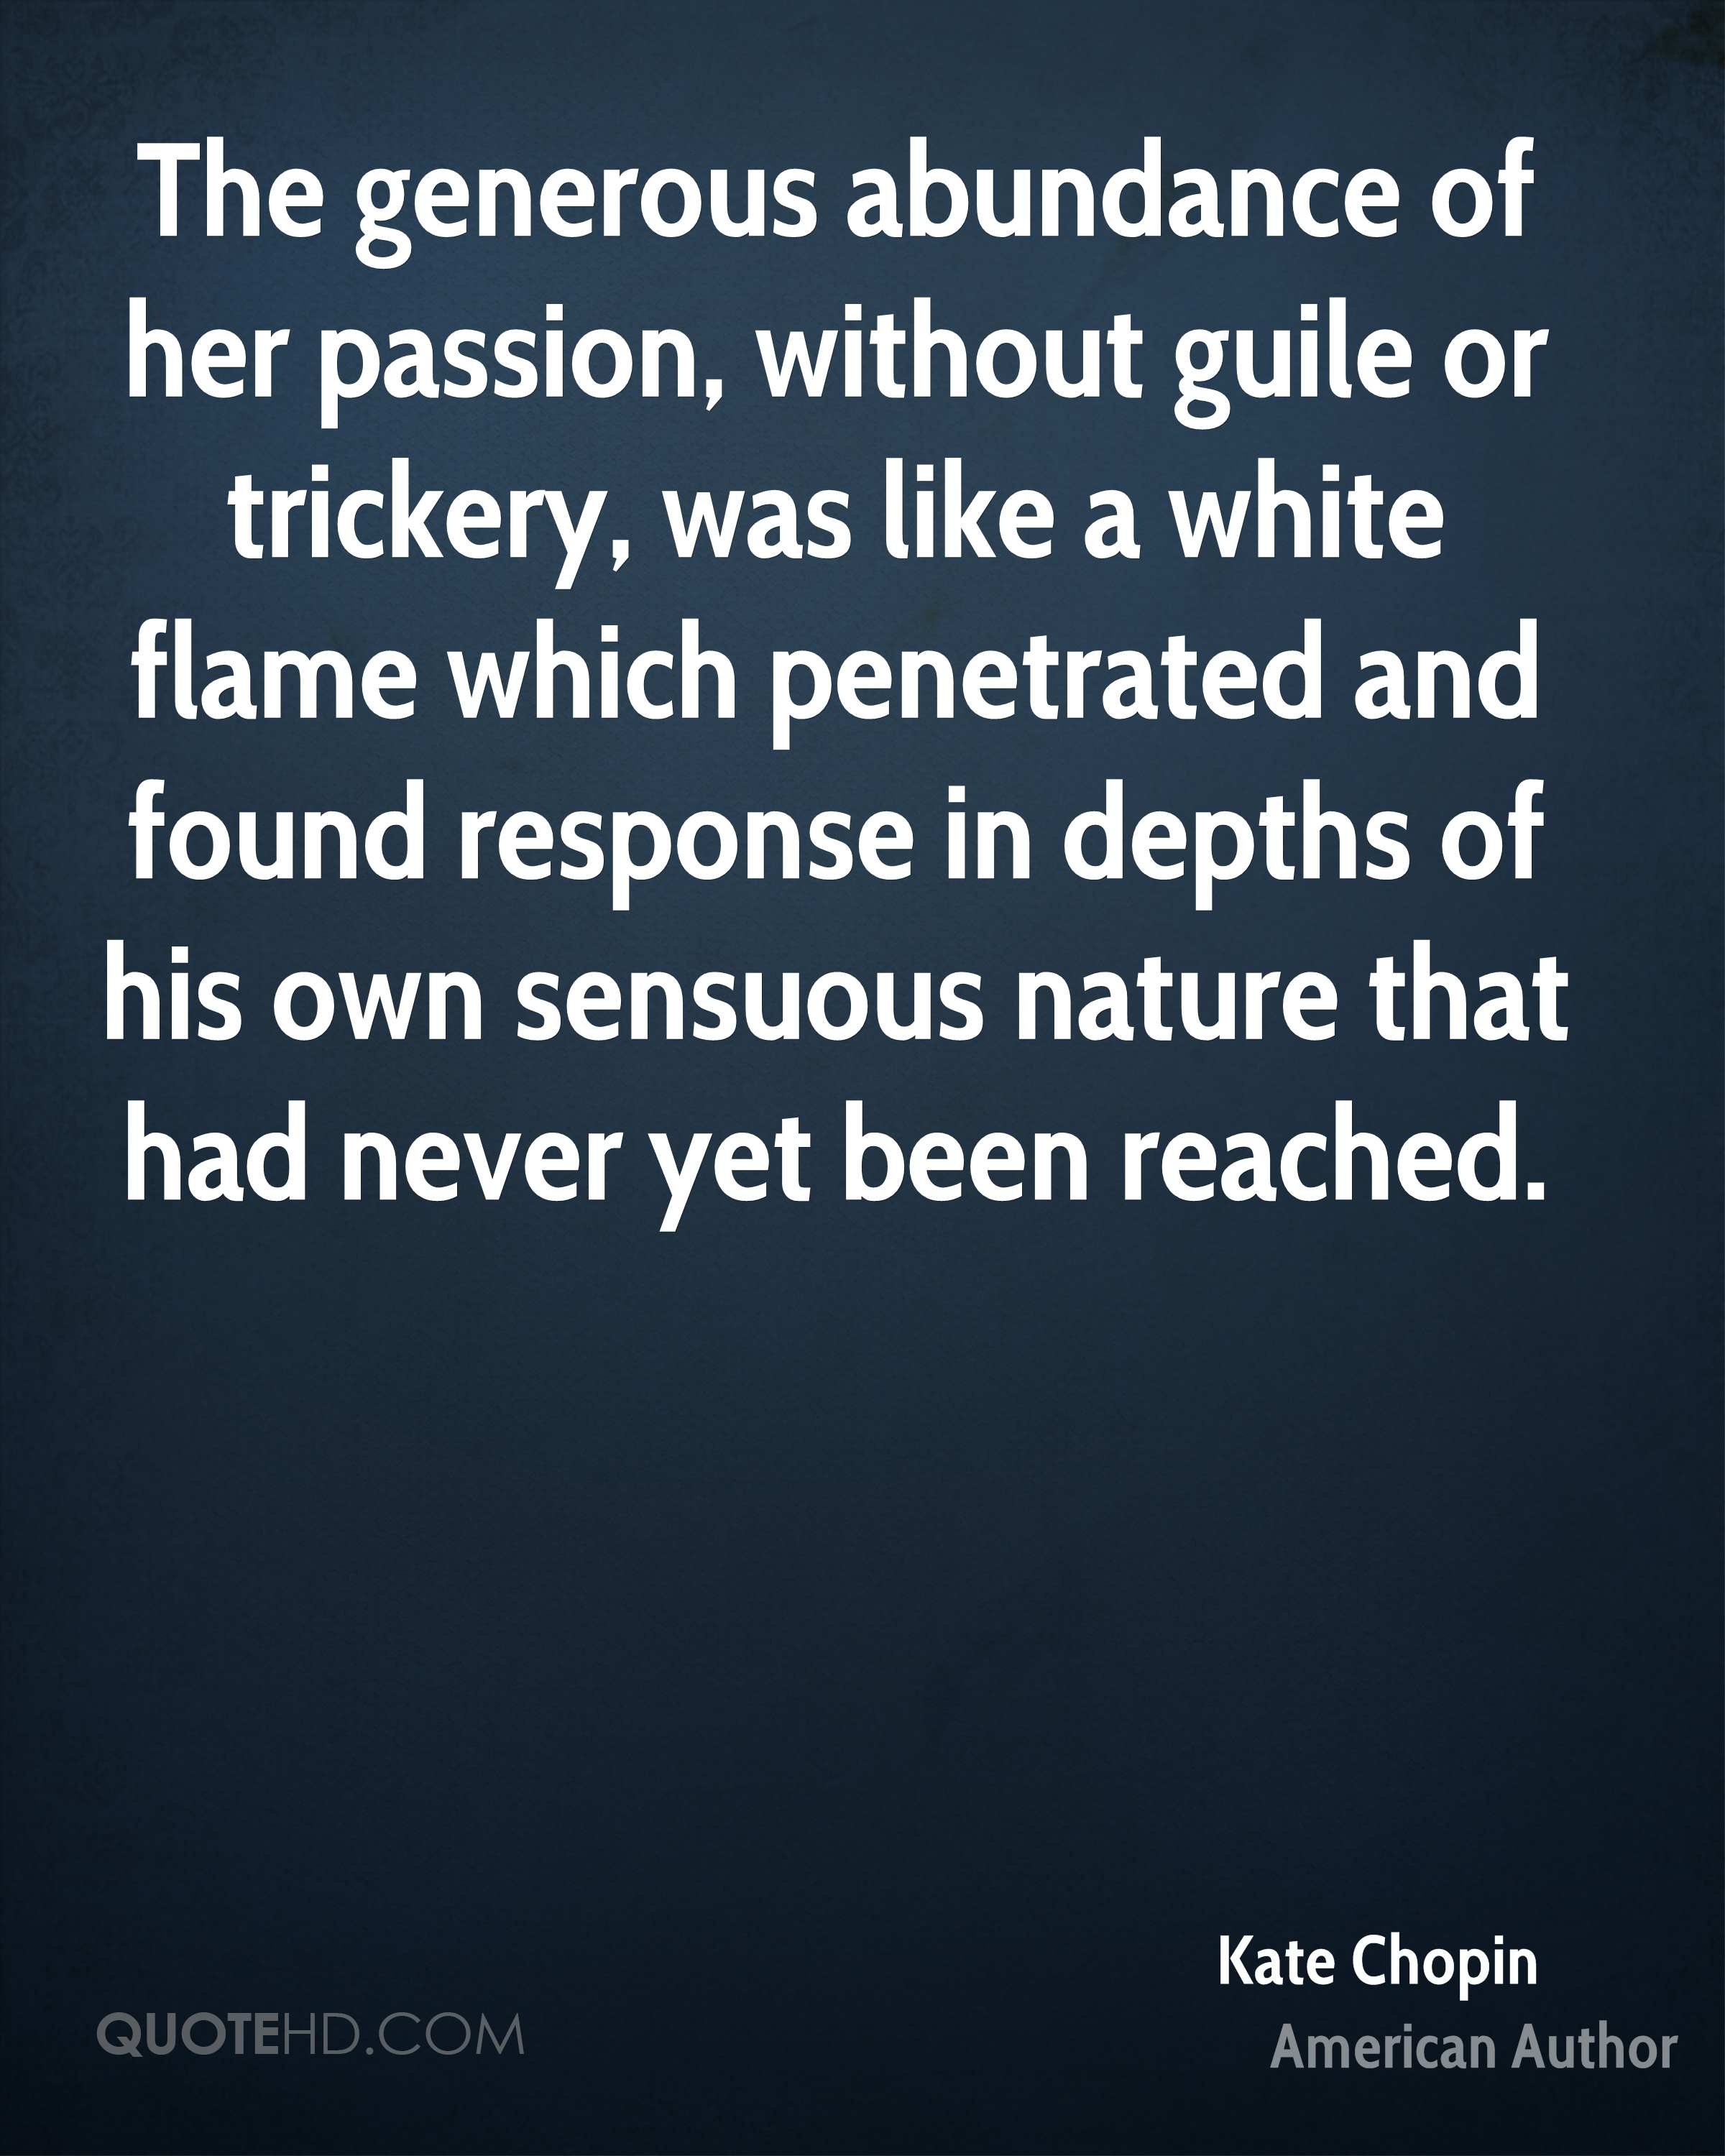 The generous abundance of her passion, without guile or trickery, was like a white flame which penetrated and found response in depths of his own sensuous nature that had never yet been reached.